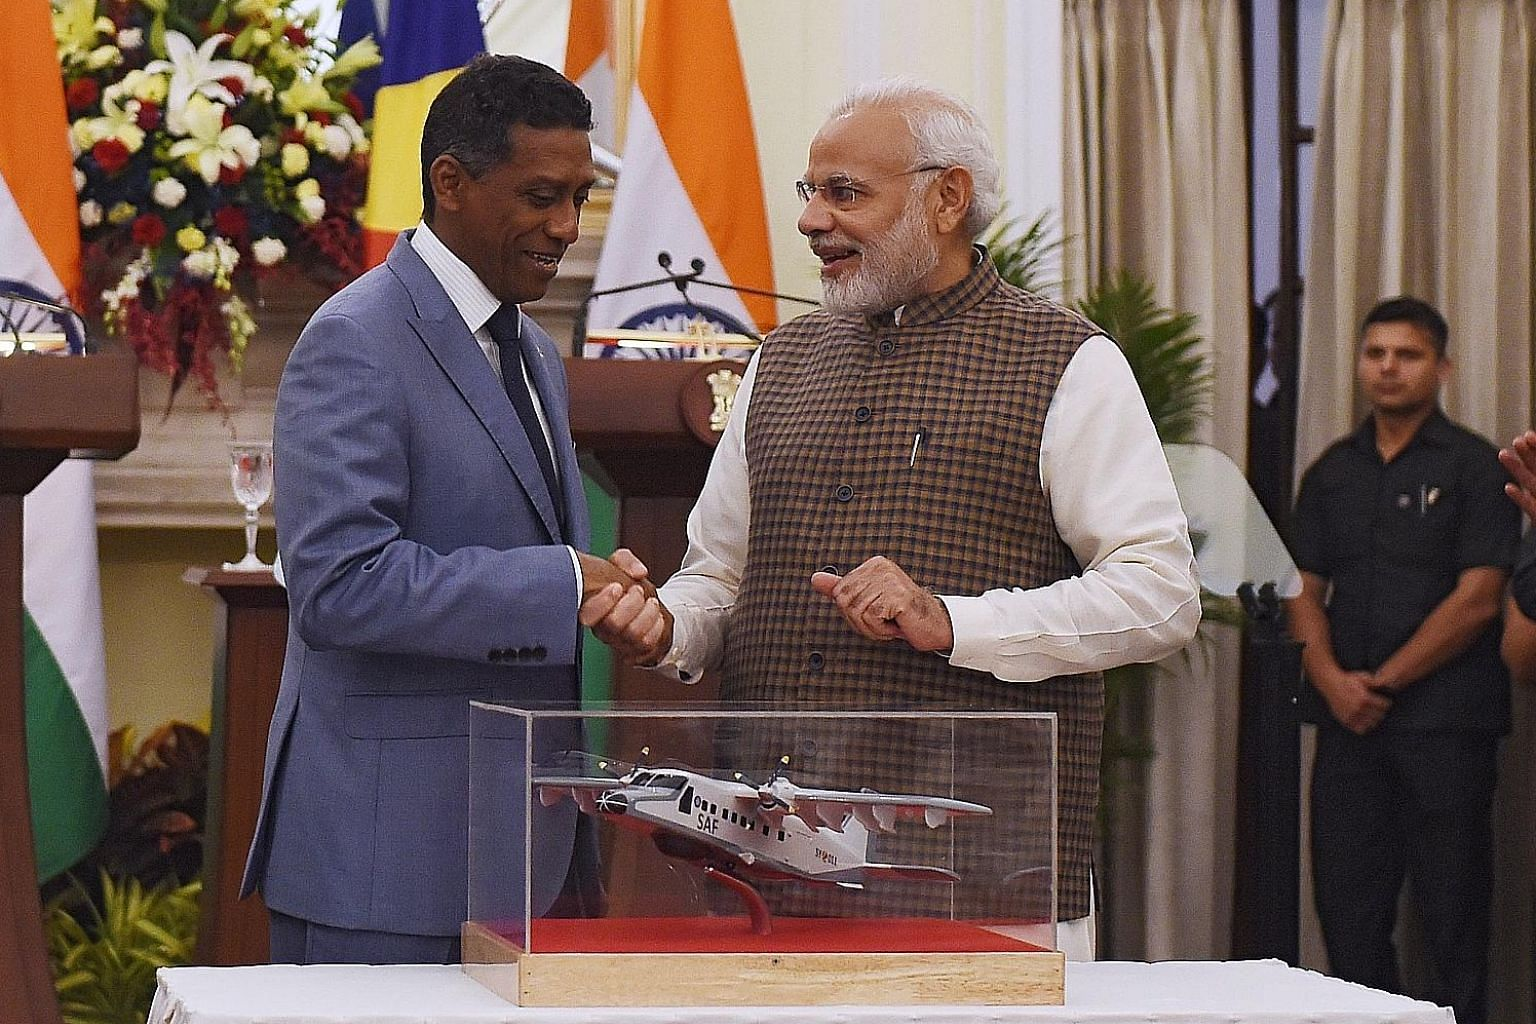 Seychelles President Danny Faure (left) and India's Prime Minister Narendra Modi with a model of a Dornier aircraft.